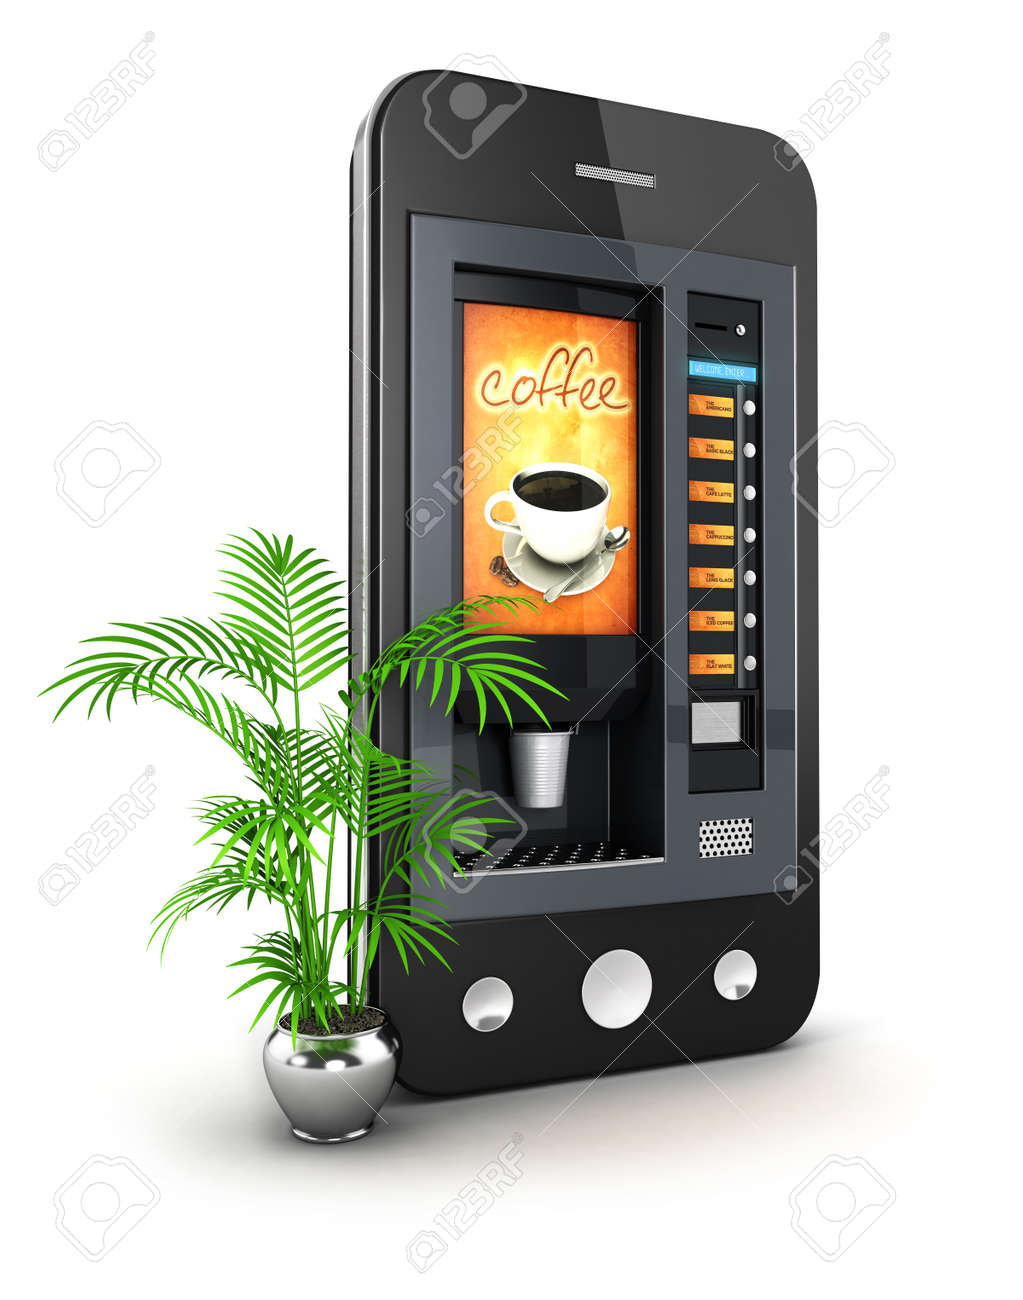 3d coffee machine smartphone, isolated white background, 3d image Stock Photo - 22392161